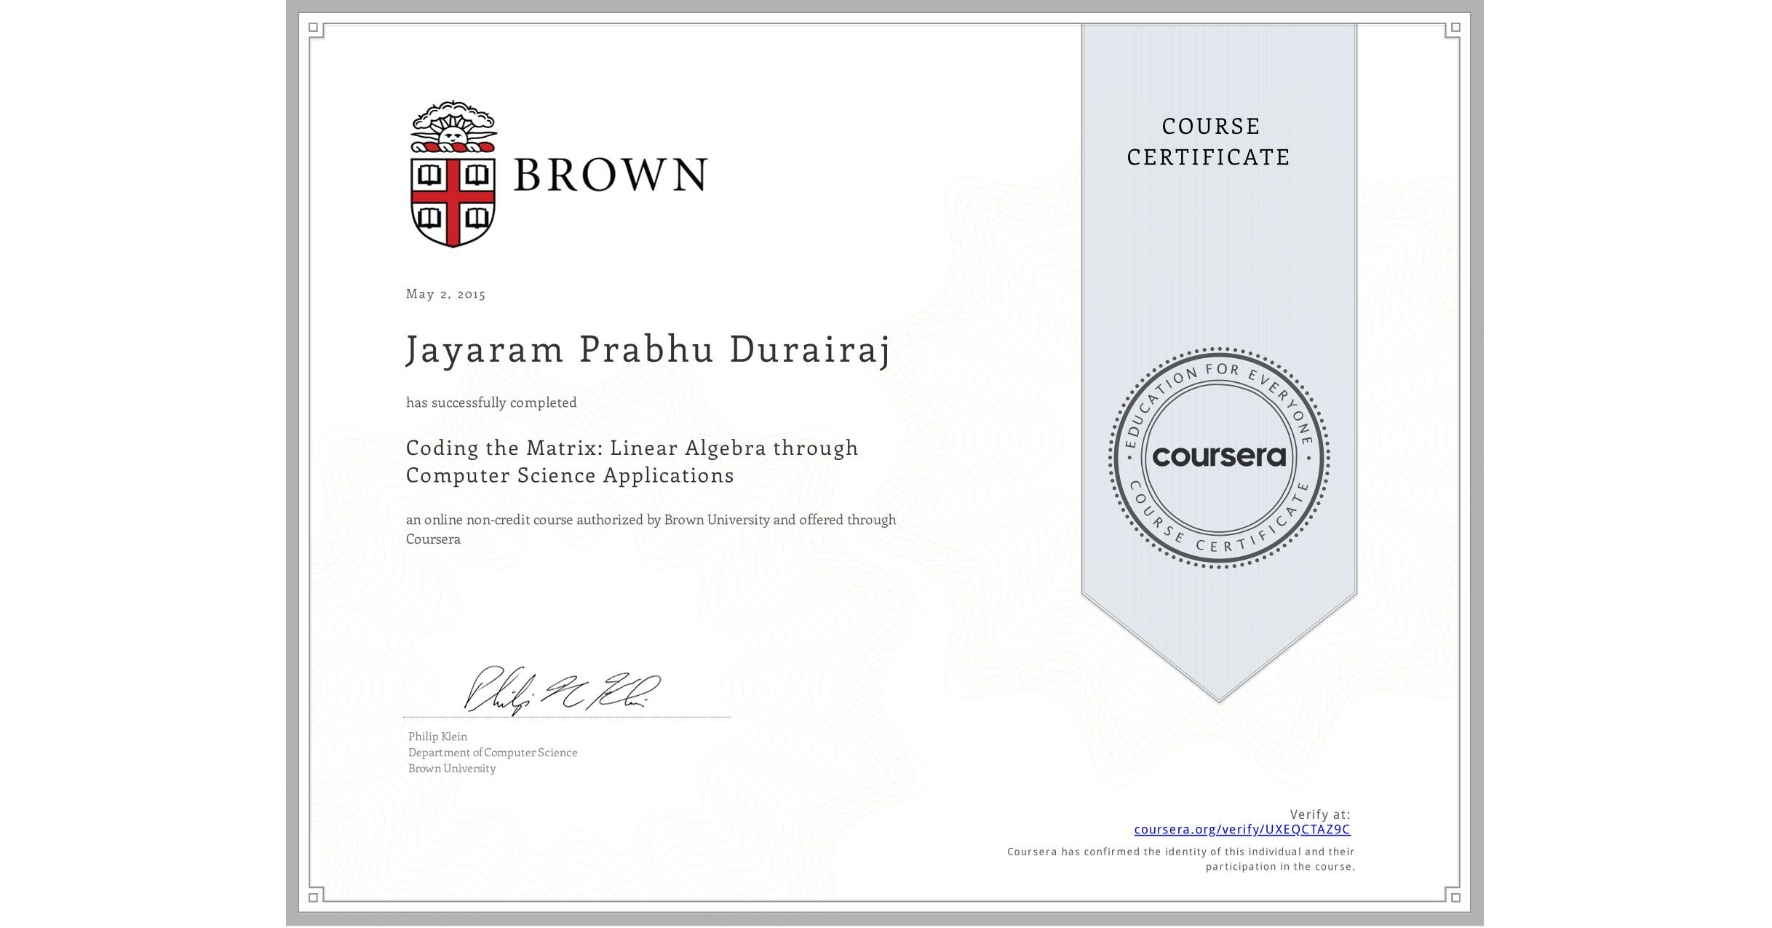 View certificate for Jayaram Prabhu  Durairaj, Coding the Matrix: Linear Algebra through Computer Science Applications, an online non-credit course authorized by Brown University and offered through Coursera